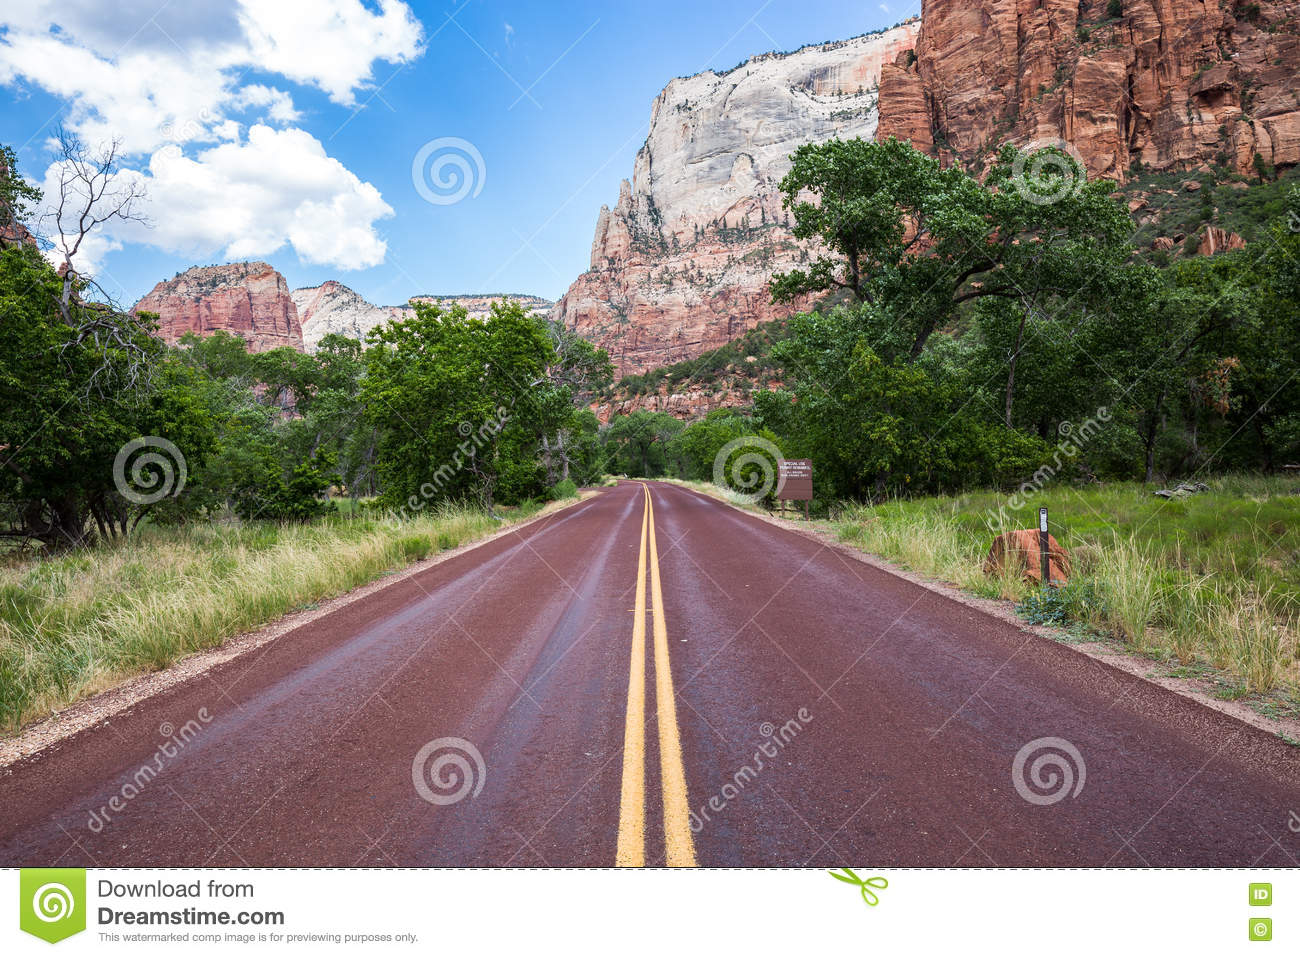 Typical red road in Zion National Park, Utah, USA